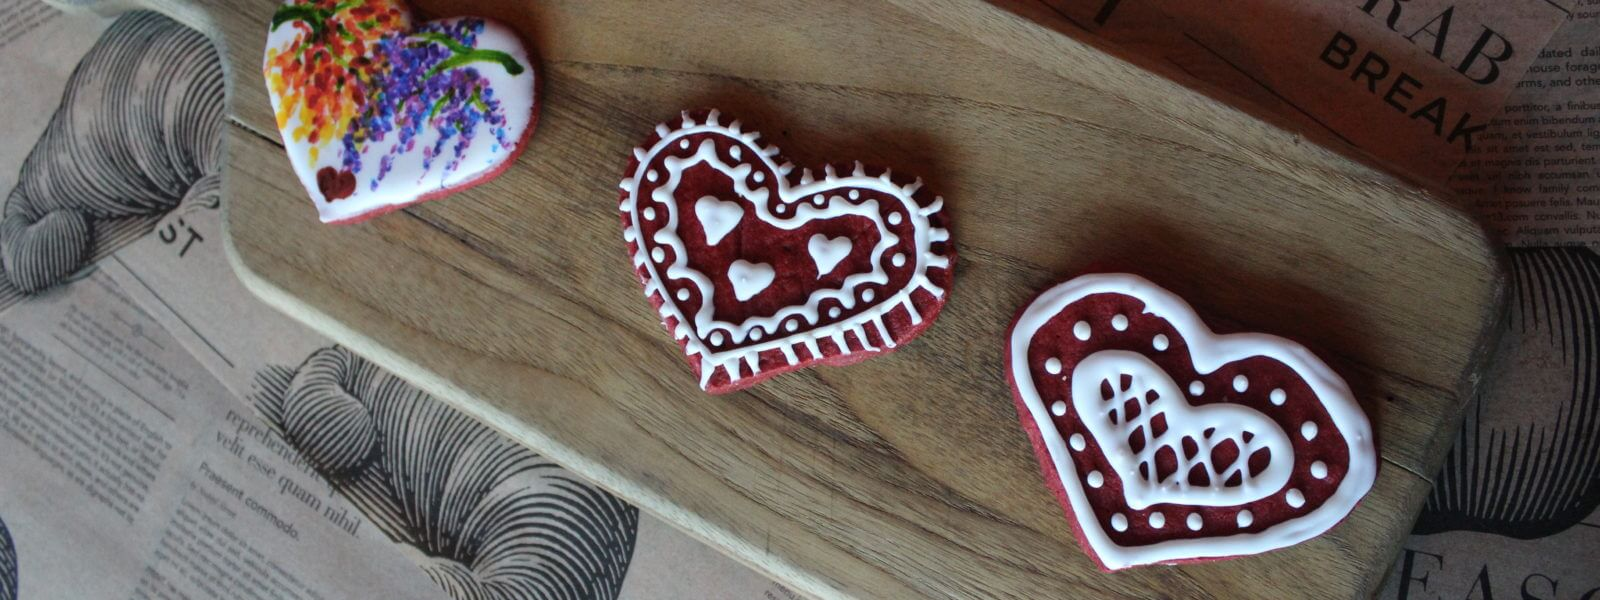 3 heart-shaped decorated cookies on a board.